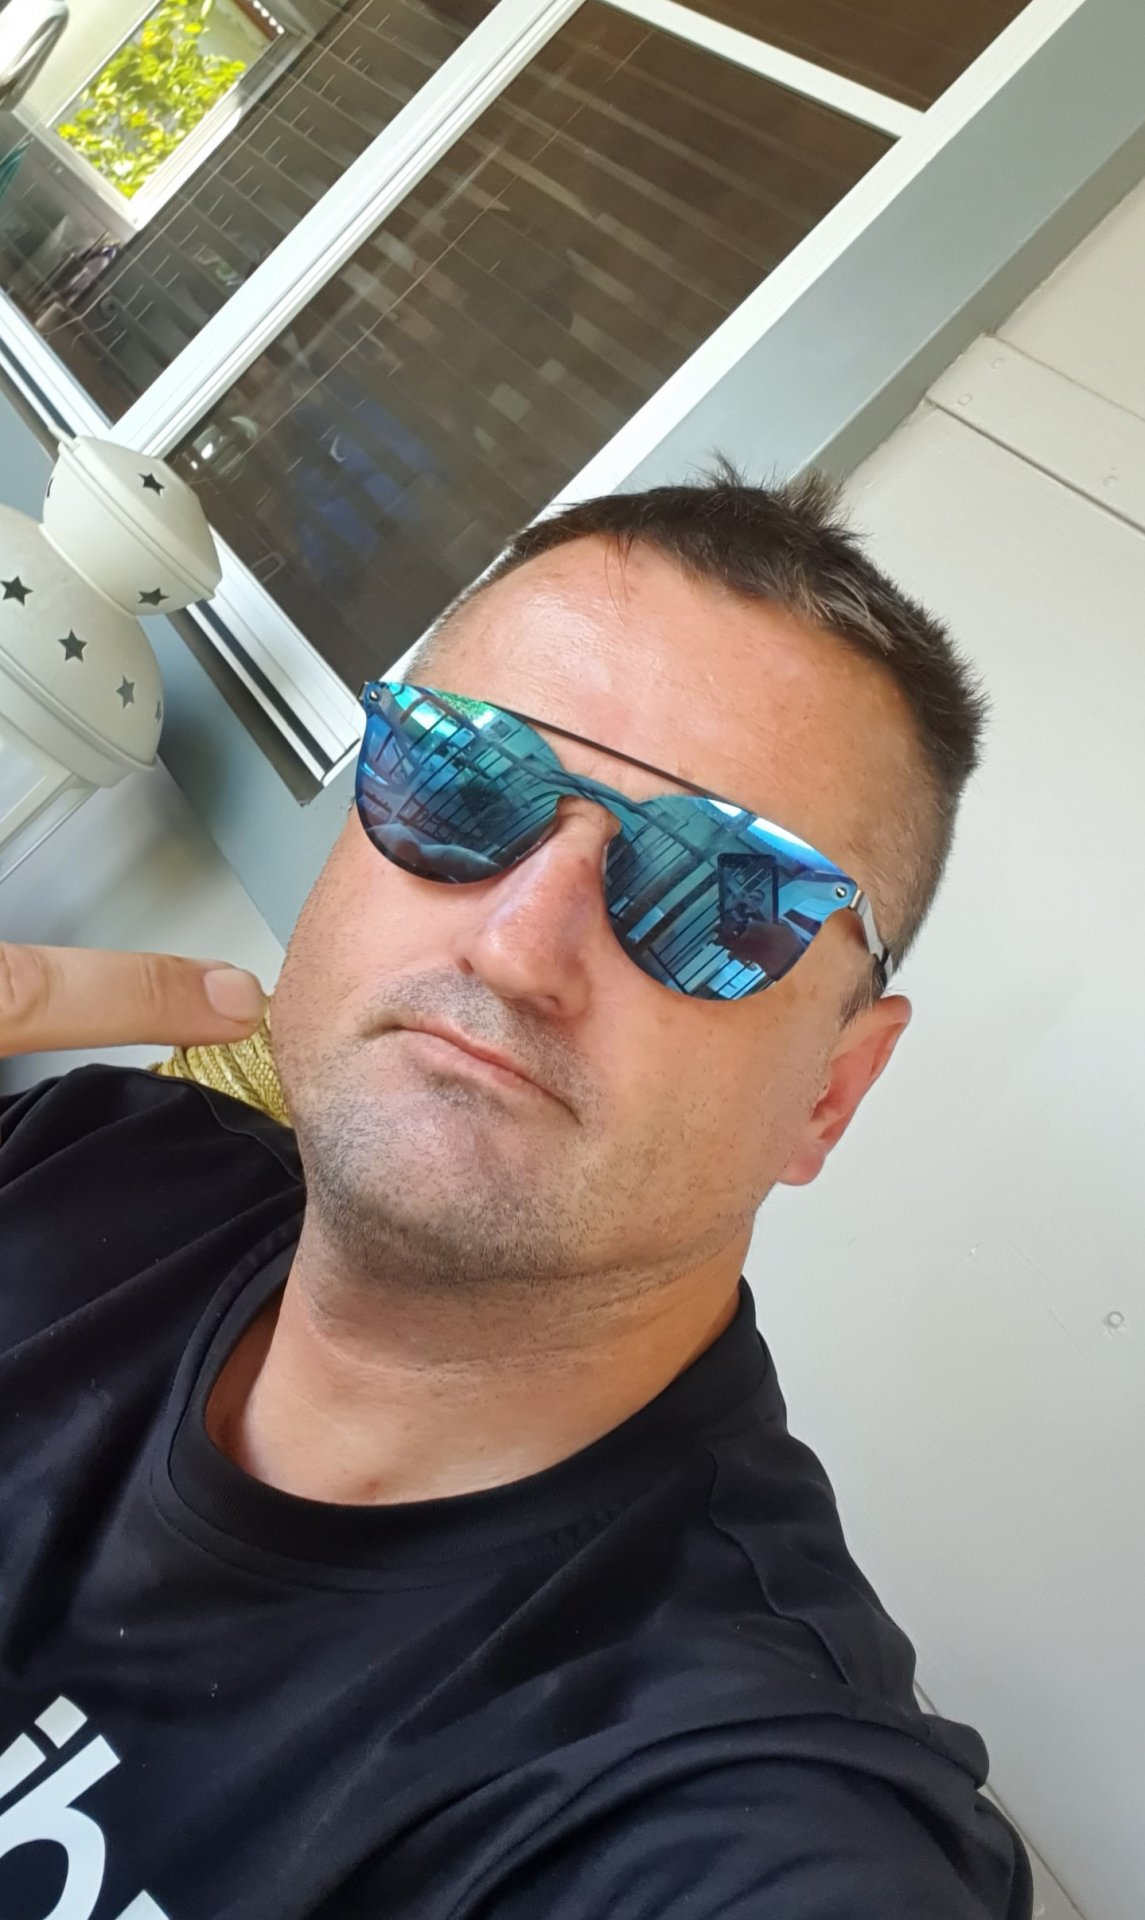 Neilyboy82  from New South Wales,Australia